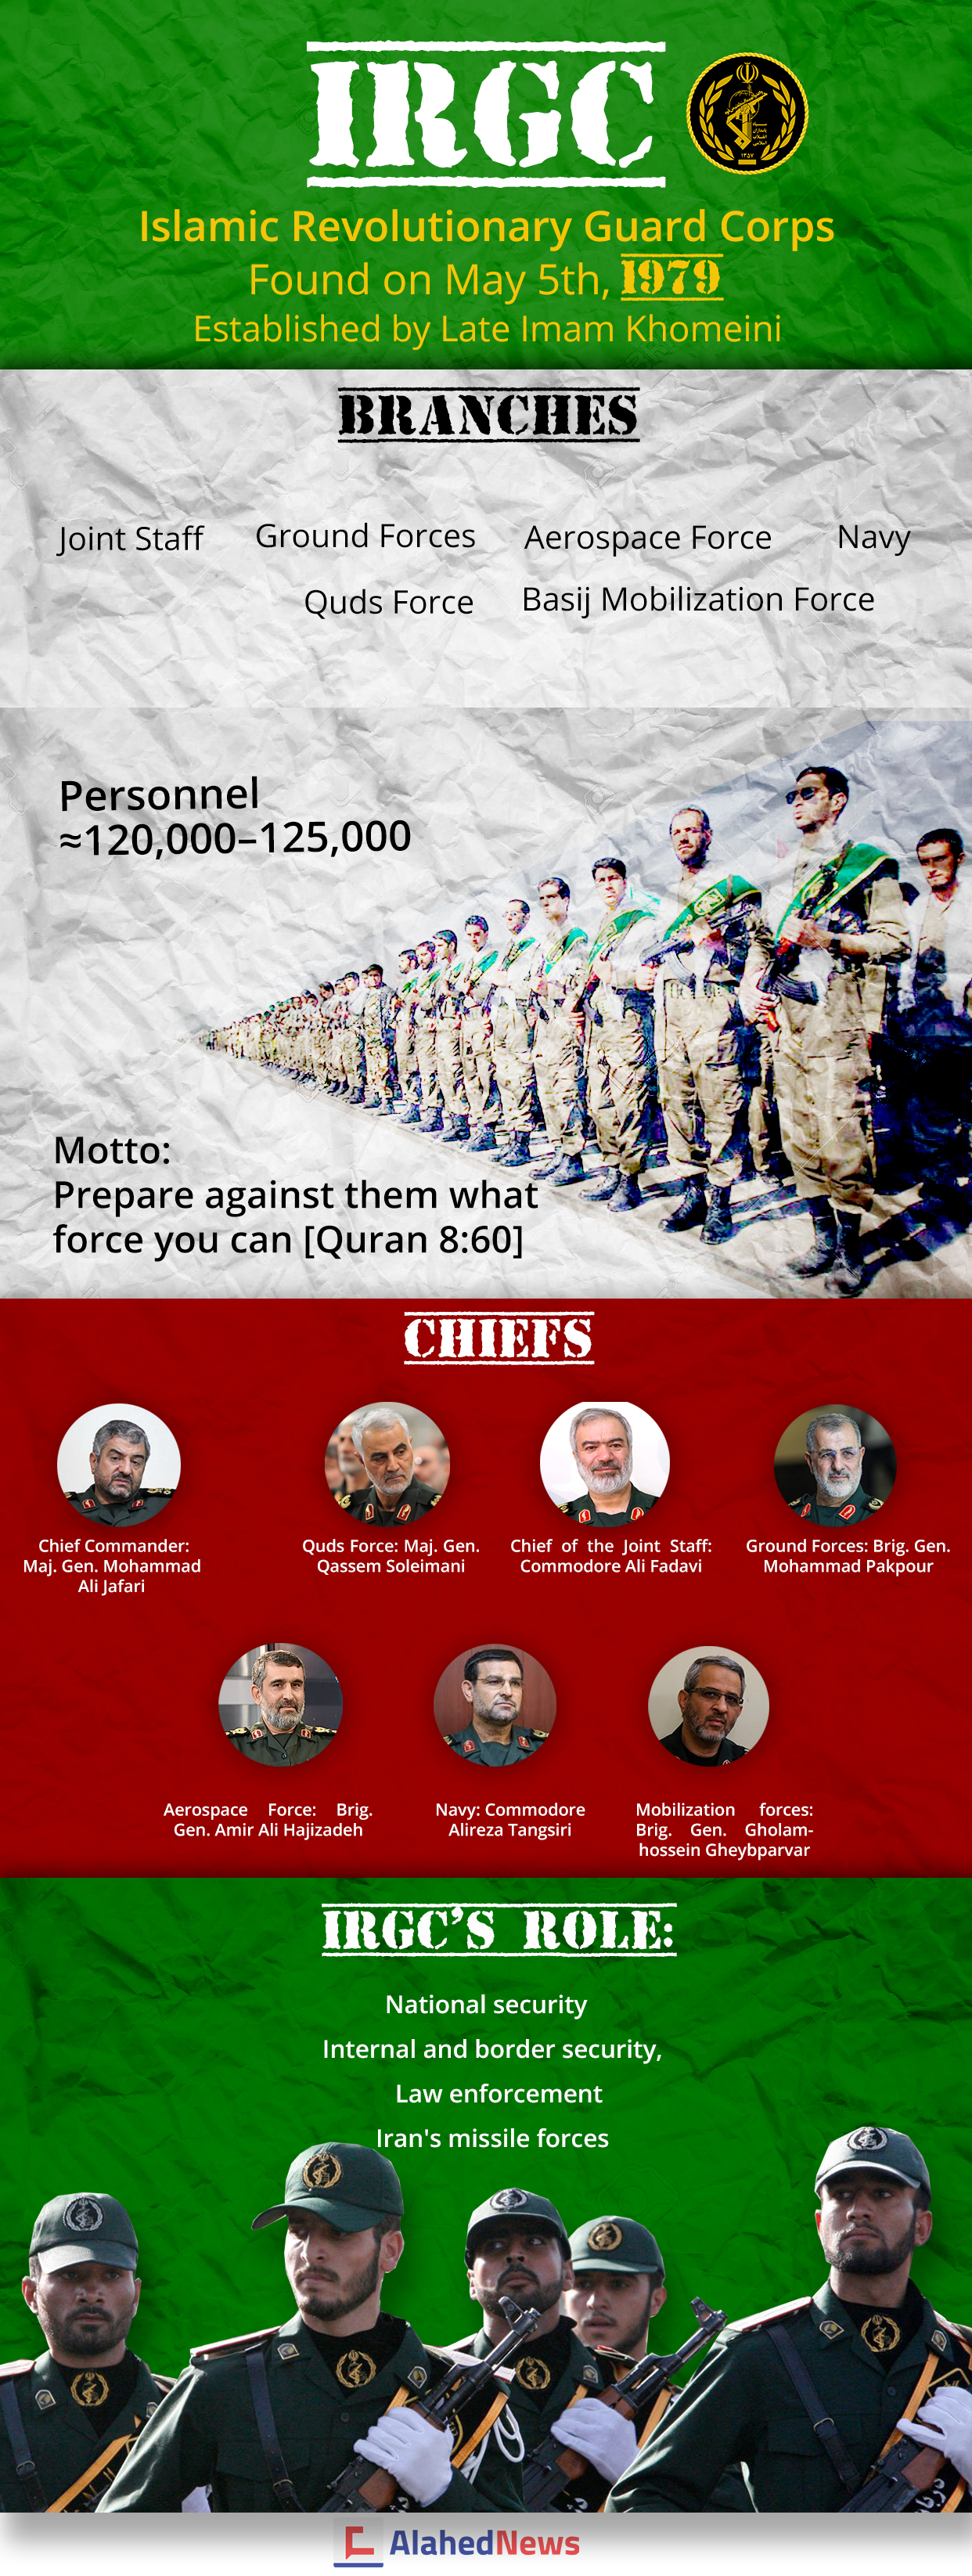 One of Iran's Top Military Establishments: The IRGC's Branches, Chiefs and Roles